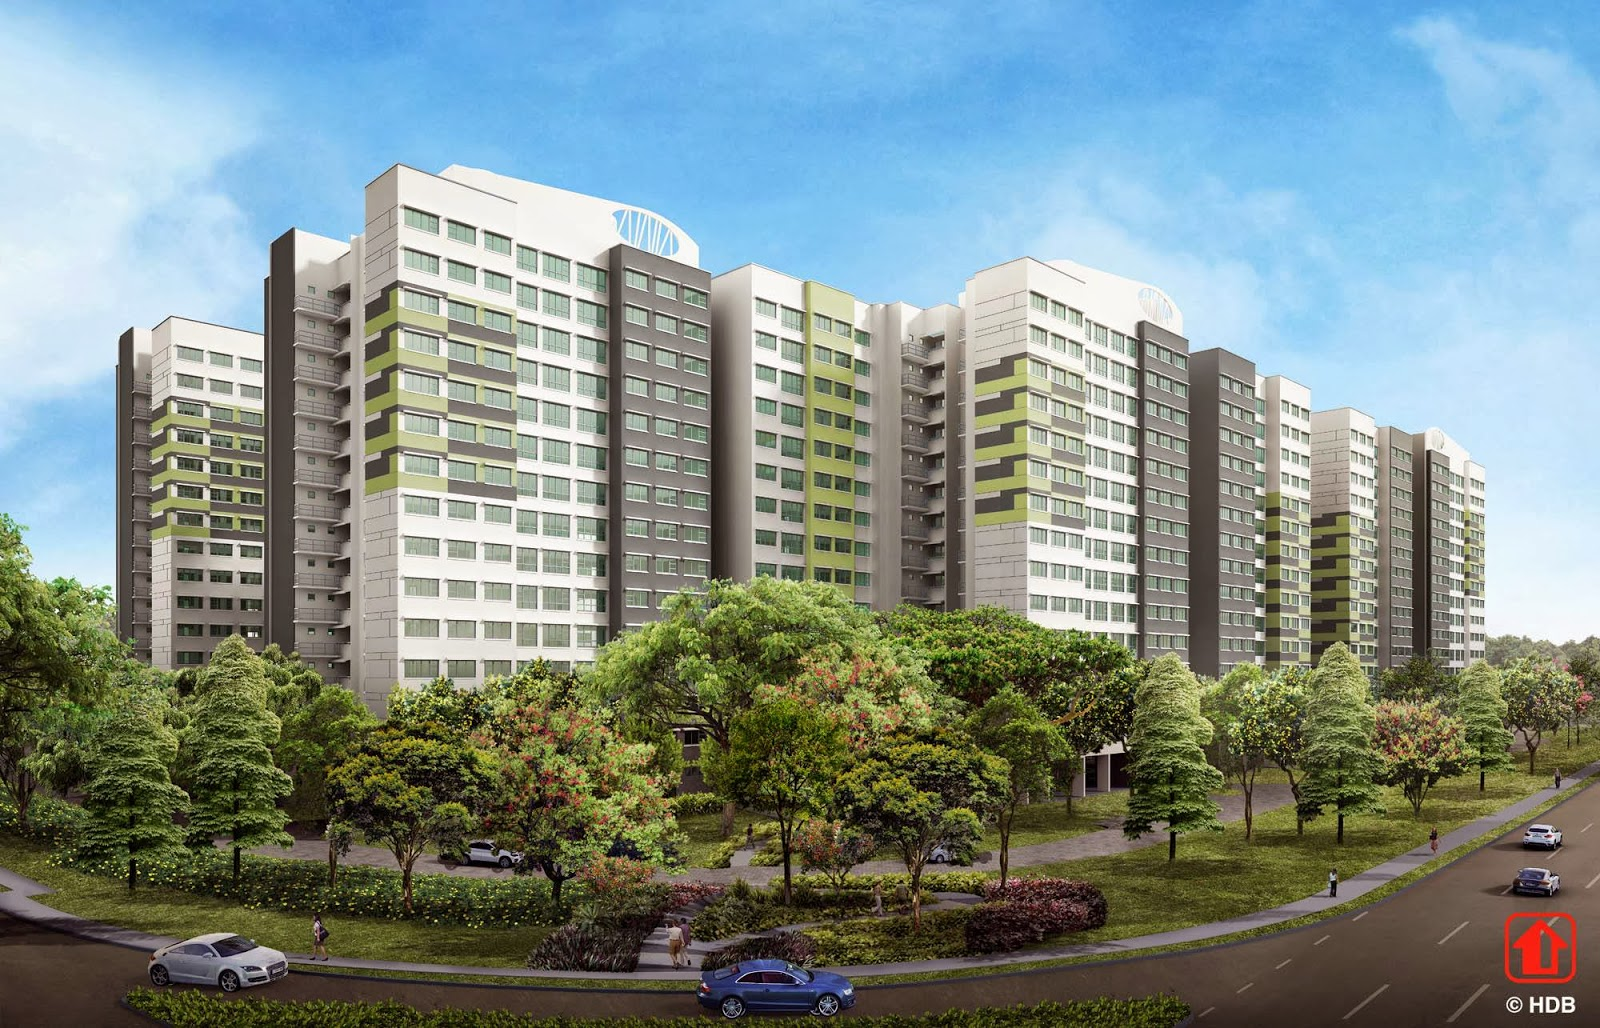 Hdb sales of balance - Record 8 952 Flats Launched By Hdb In Nov 2013 Sales Exercise